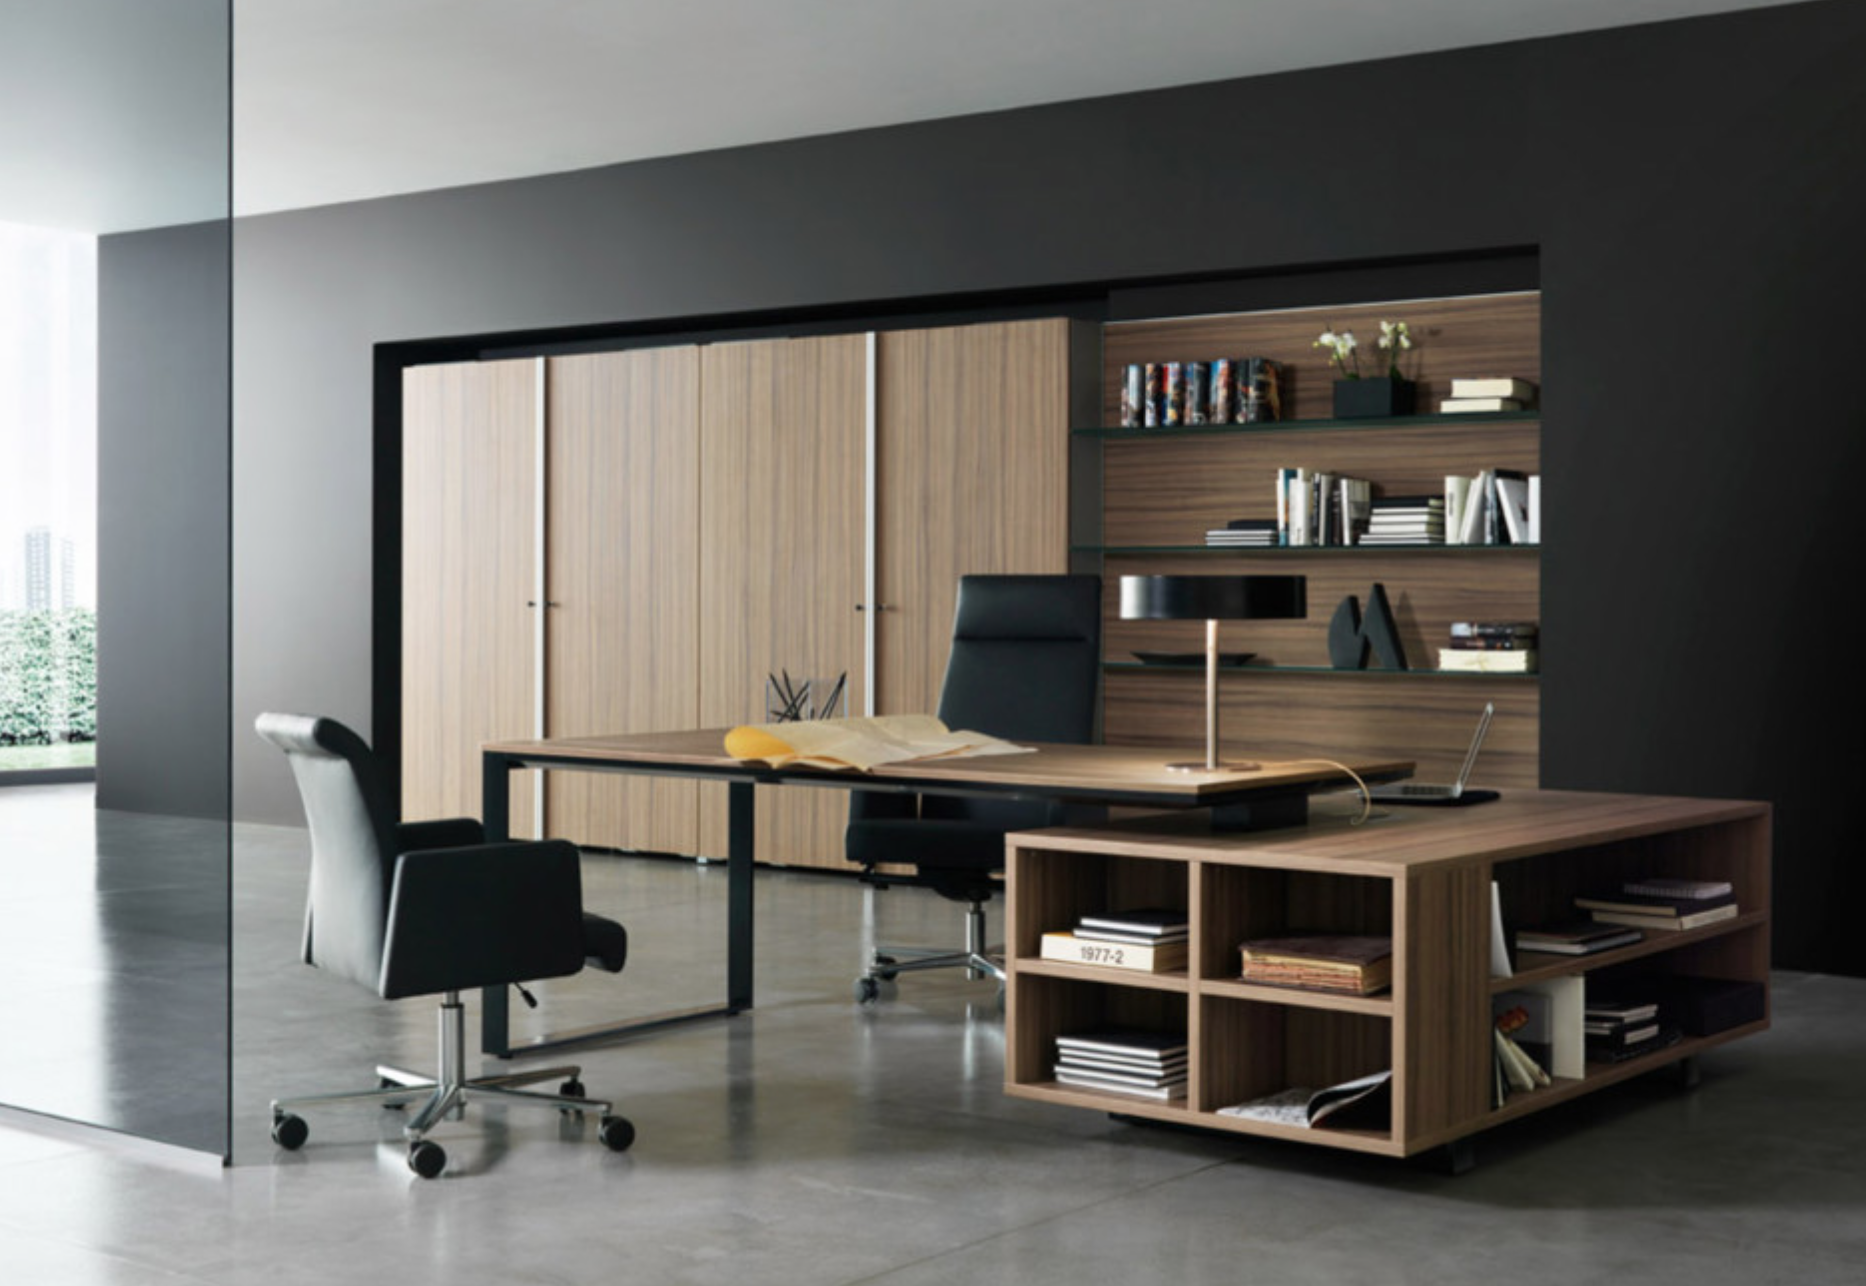 modern design luxury office table executive desk. Amazing And Cool Modern Office Room Design Interior With Executive Desks Home Black Arm Chair Large Wooden Shelf Cabinet Luxury Table Desk